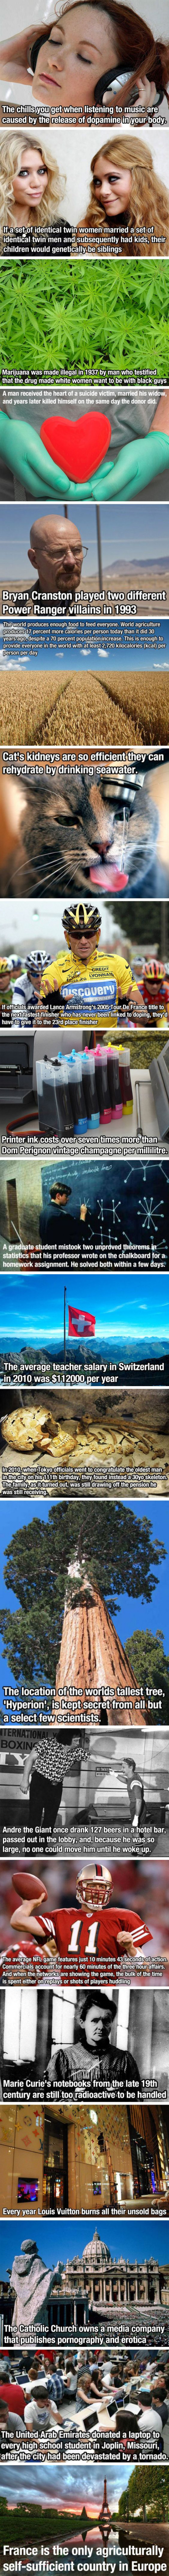 20 Interesting Things You Probably Never Wondered About